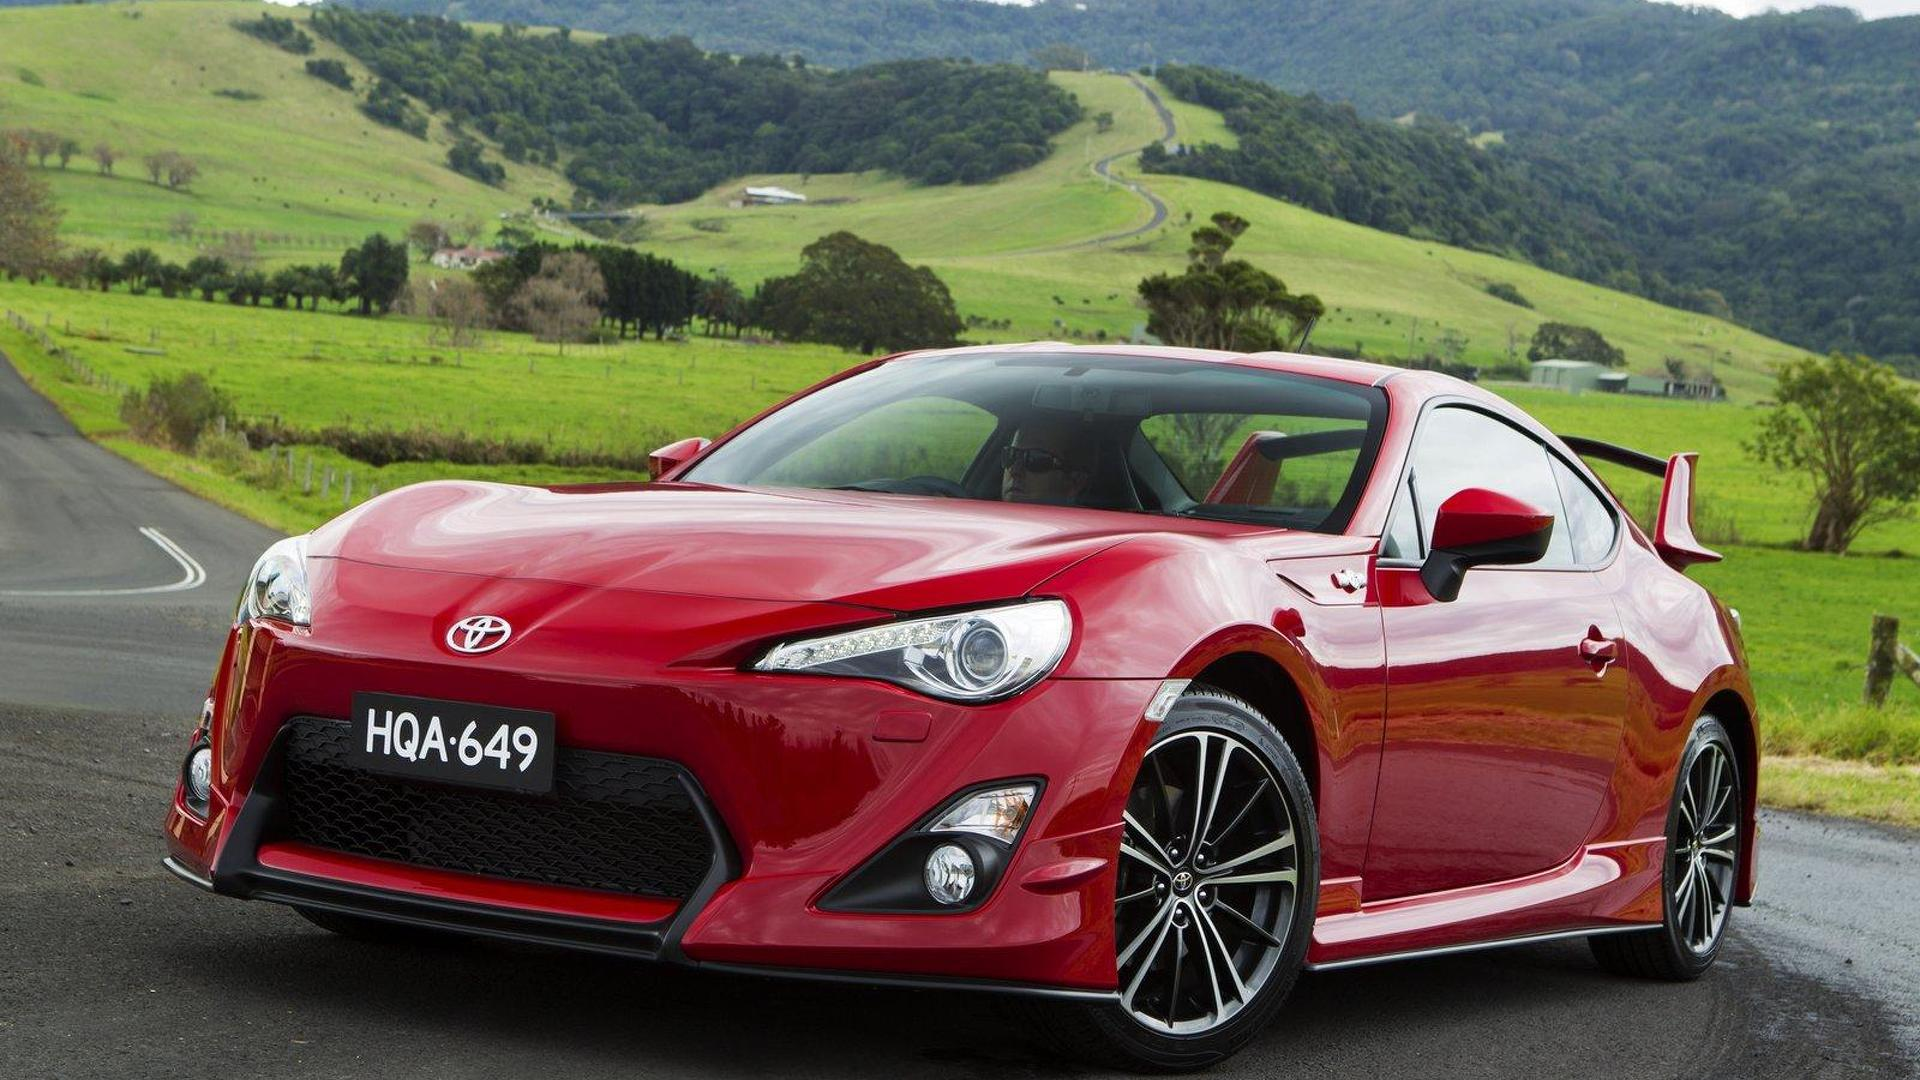 TRD considering a supercharger kit for the GT 86 FR S report